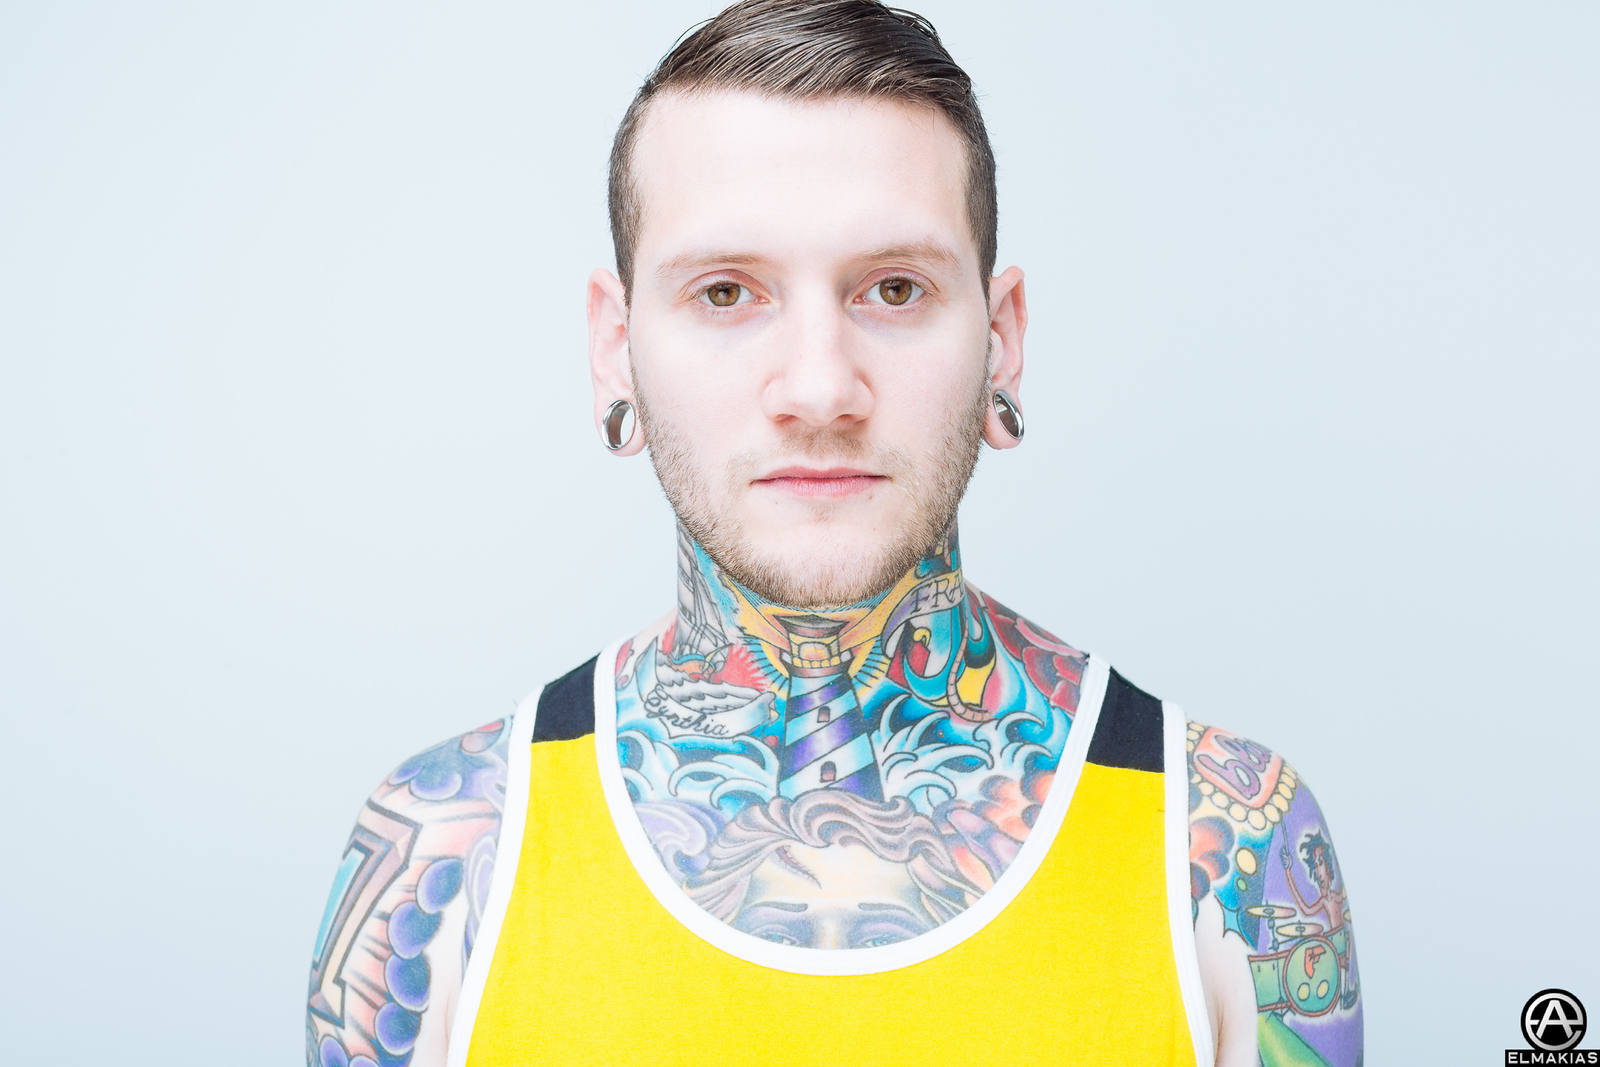 Anthony Del Gross of This Wild Life